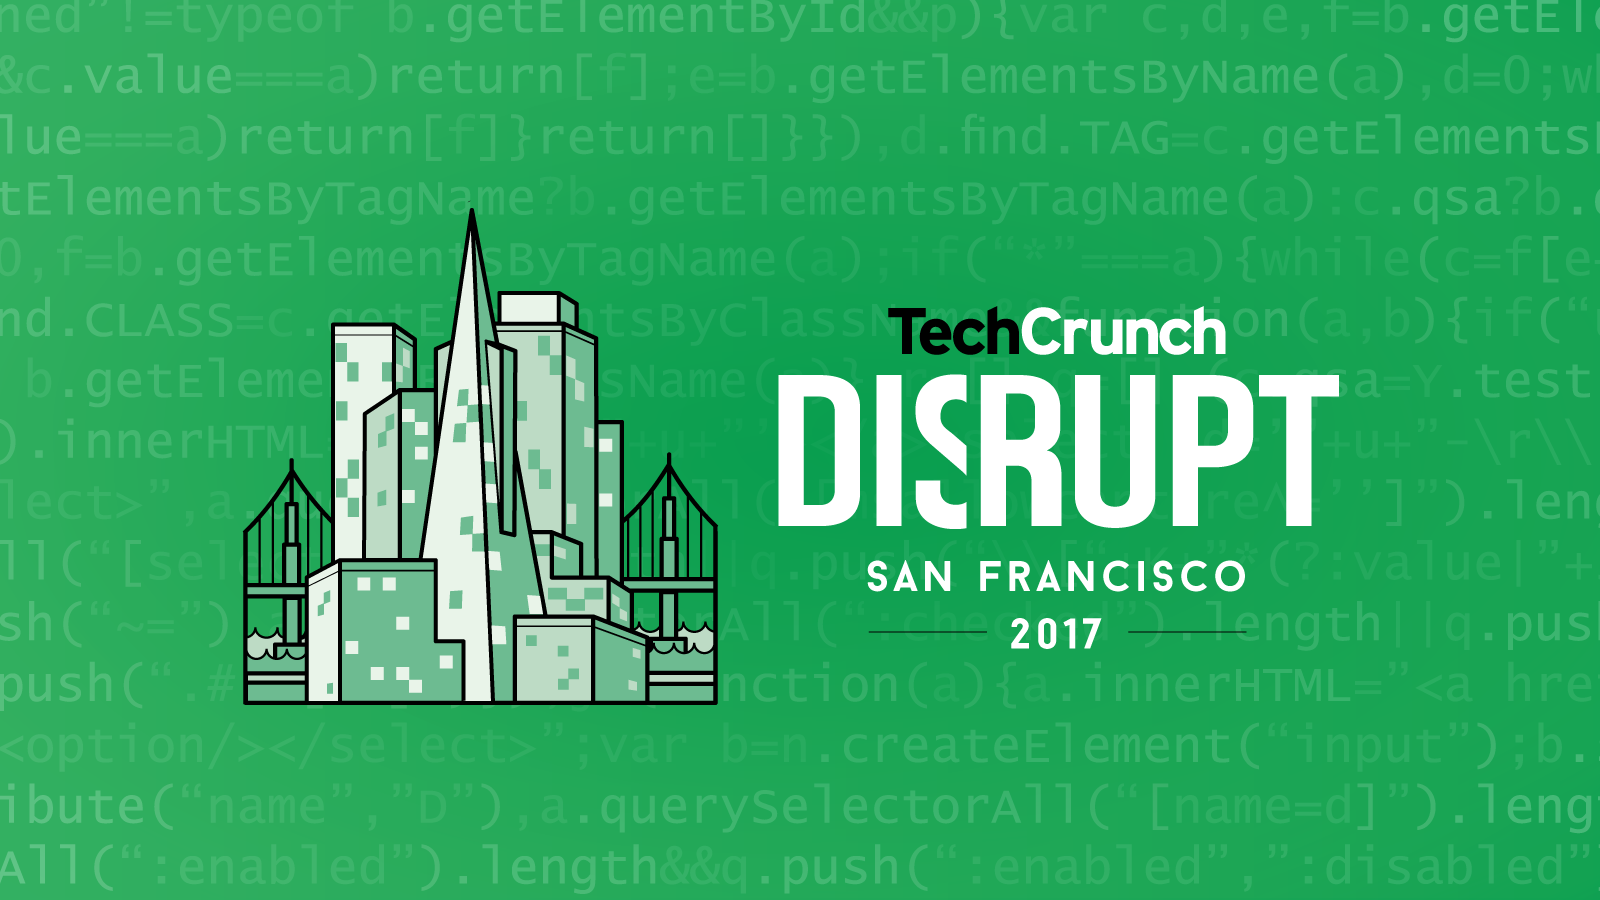 TechCrunch Disrupt SF spotlights fresh founders, not just hotshot CEOs